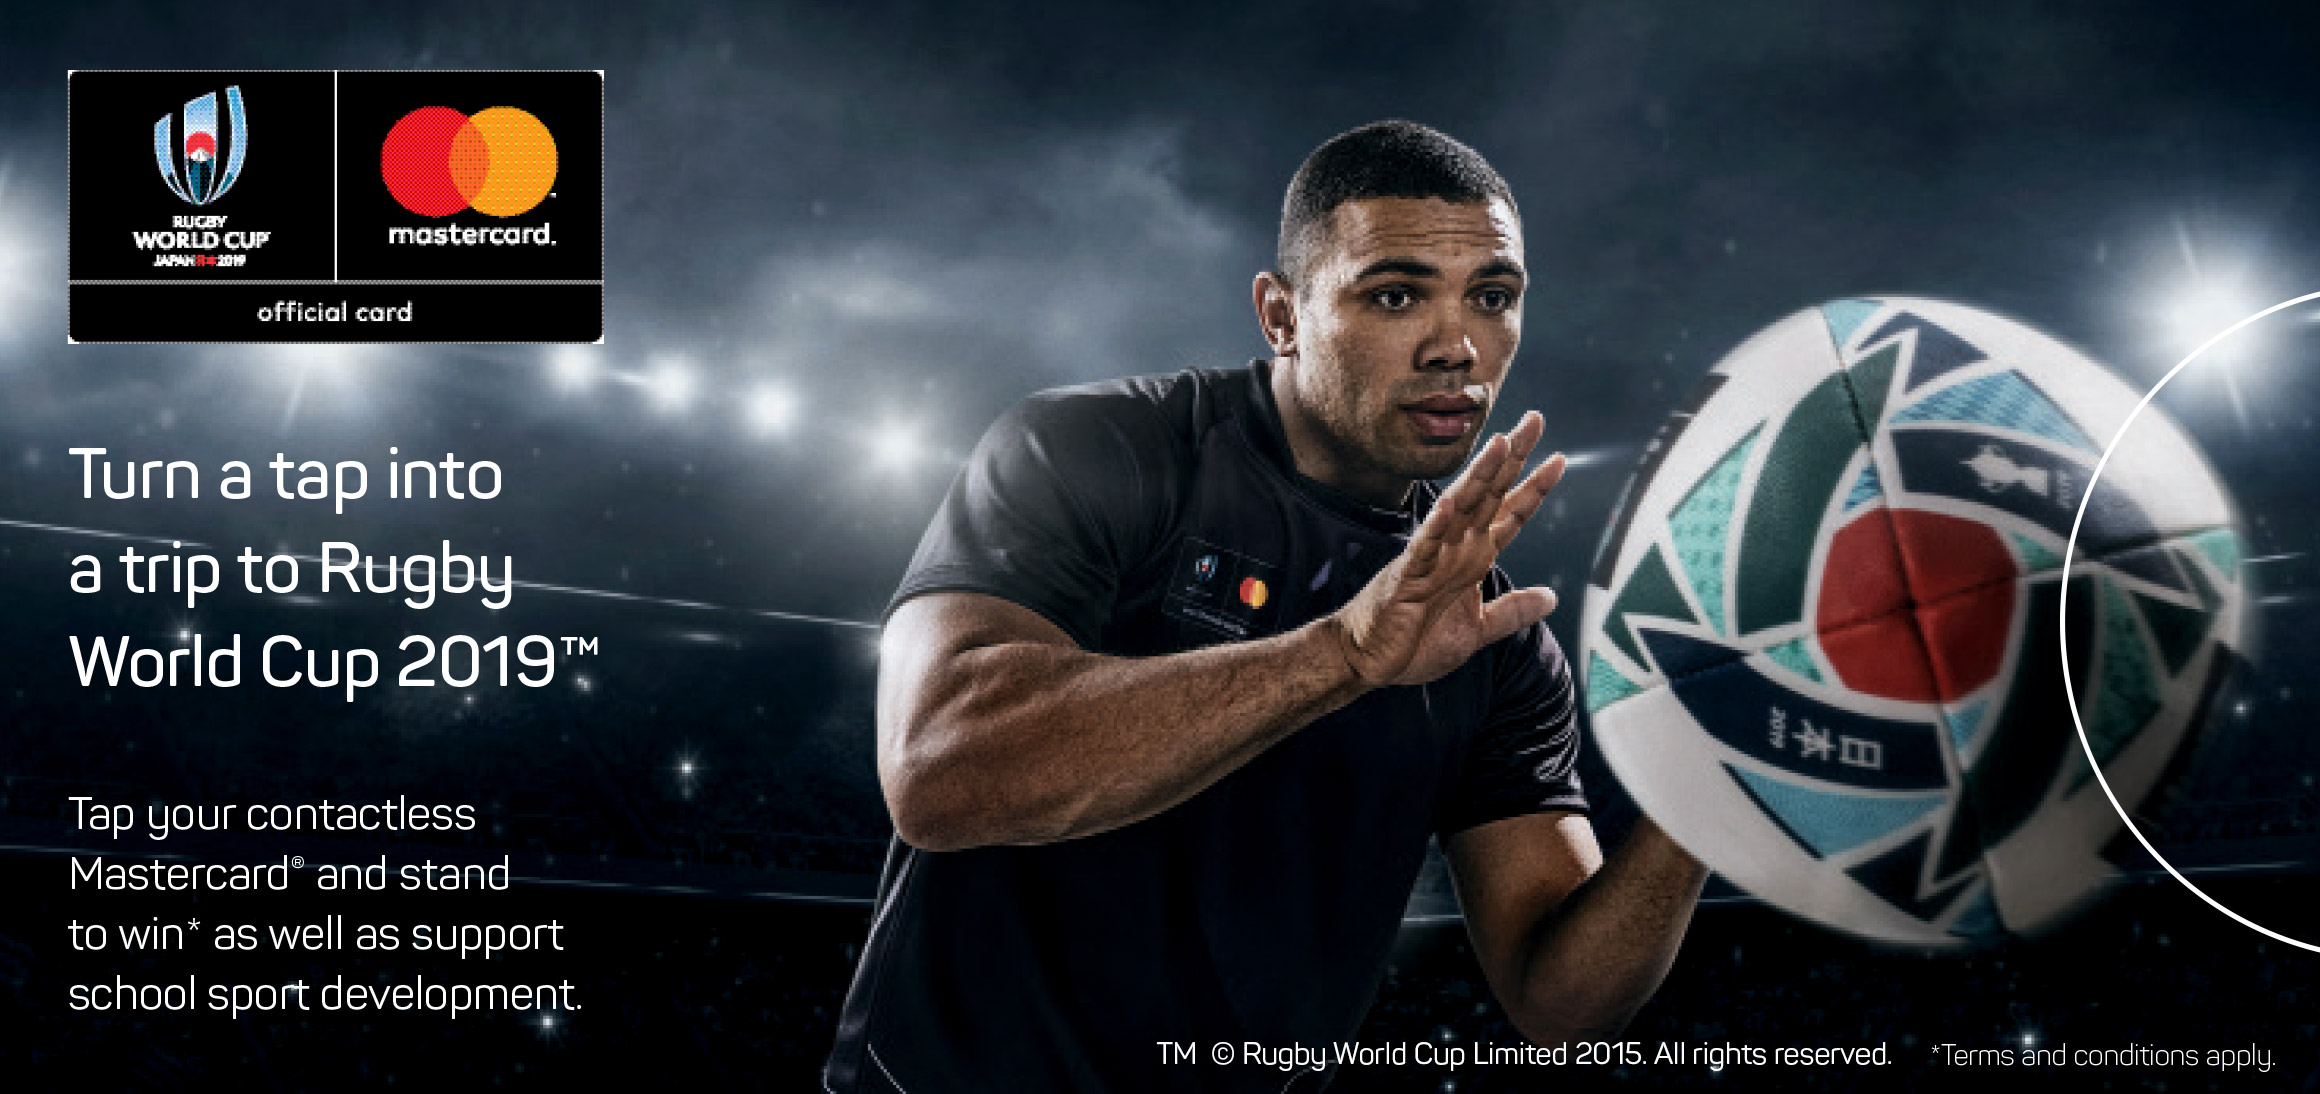 Turn a tap into a trip to the Rugby World Cup 2019